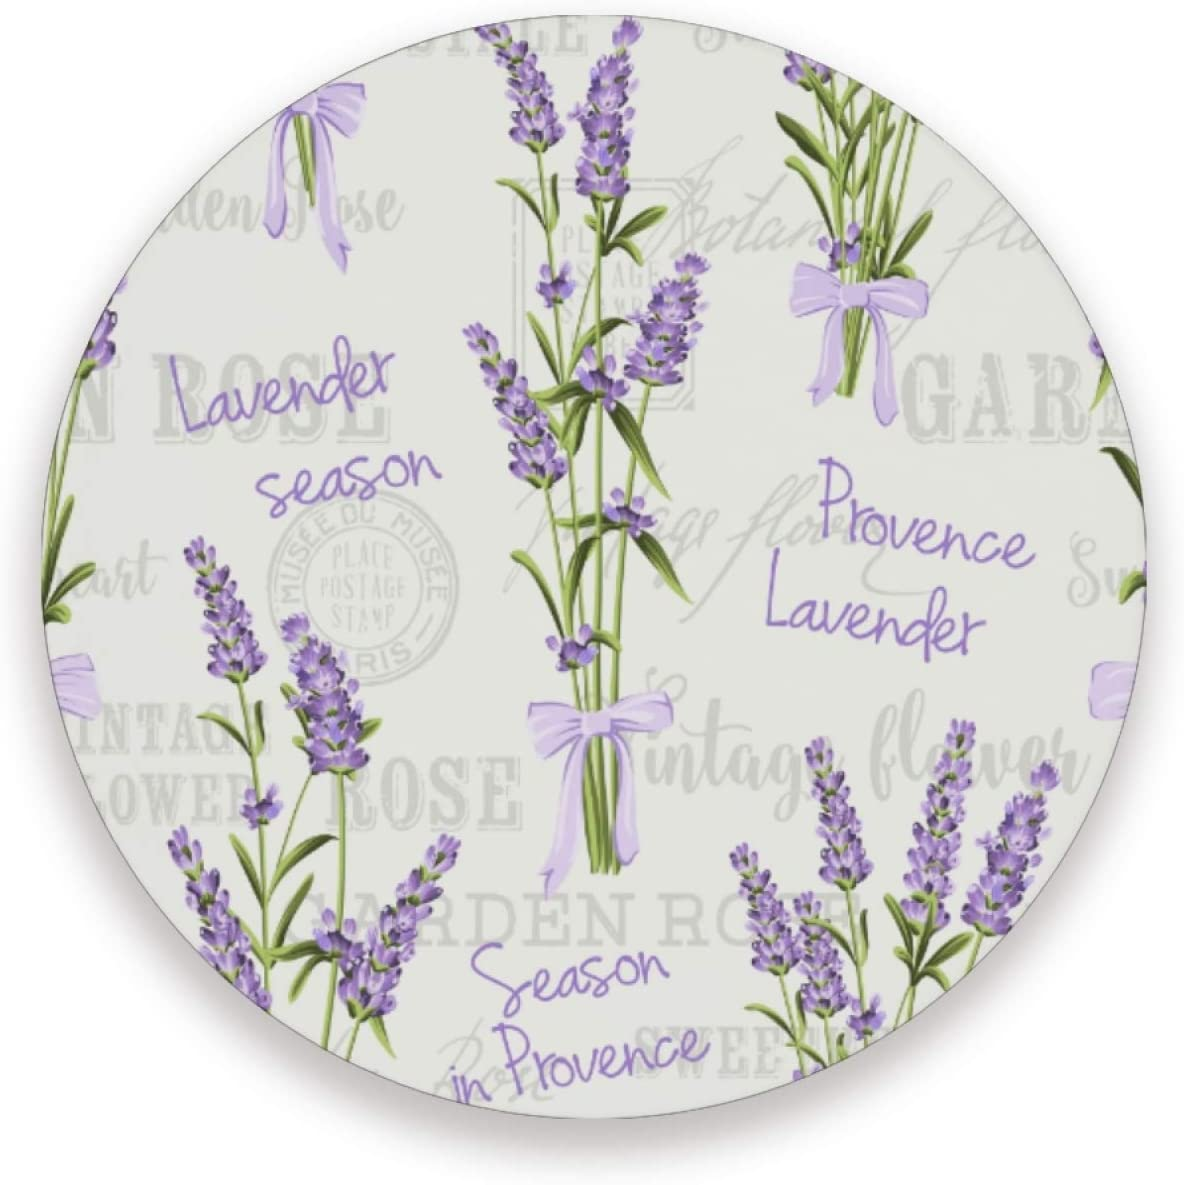 Set of 2 Round Ceramic Coasters, Lavender Flowers Watercolor Pattern, 3.9